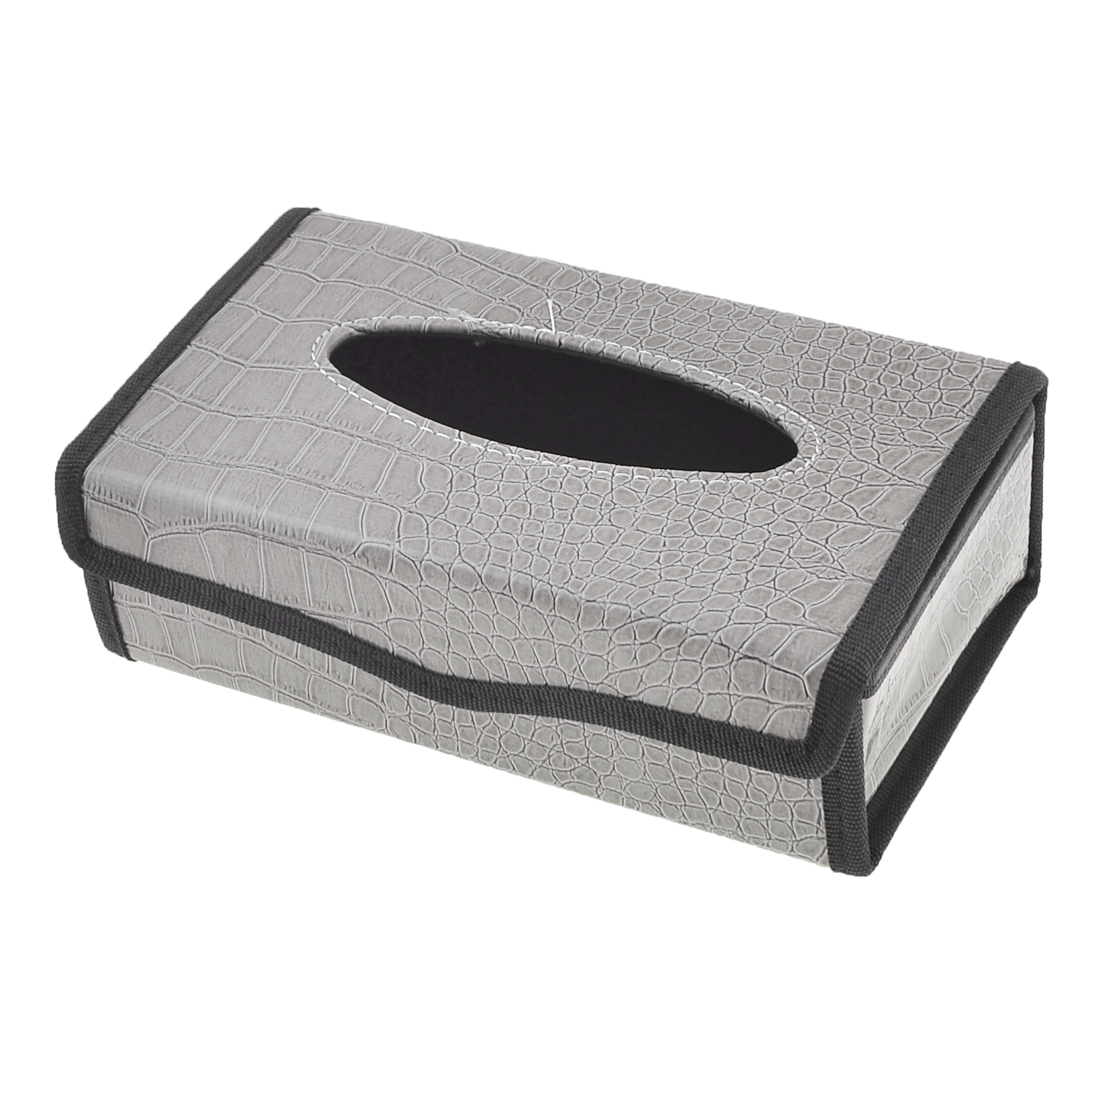 Faux Leather Crocodile Pattern Tissue Box Holder Gray Black for Car Autos